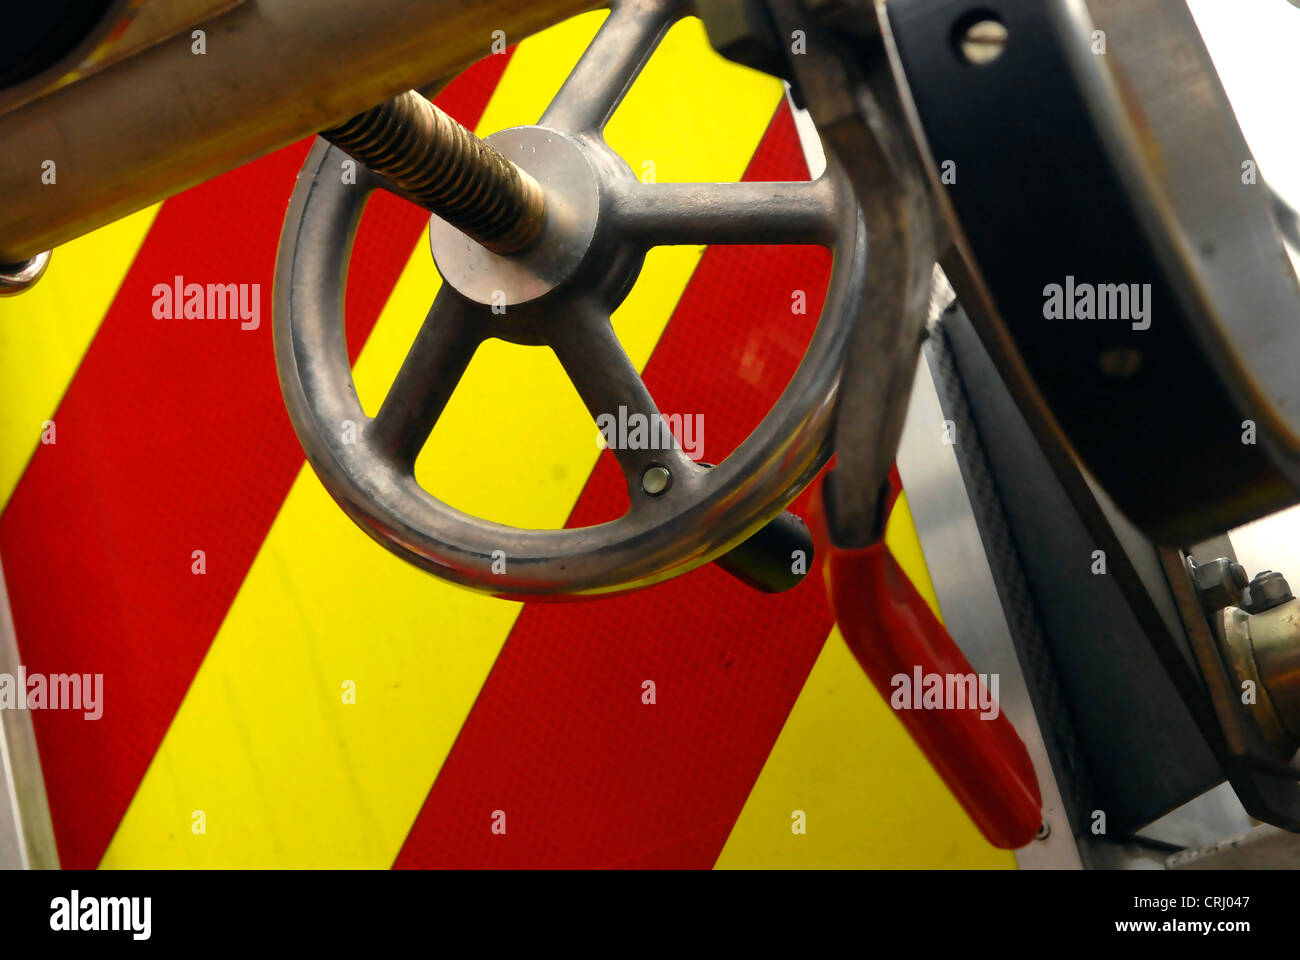 A valve on a fire engine used to control the flow of water through the firemens hose. - Stock Image